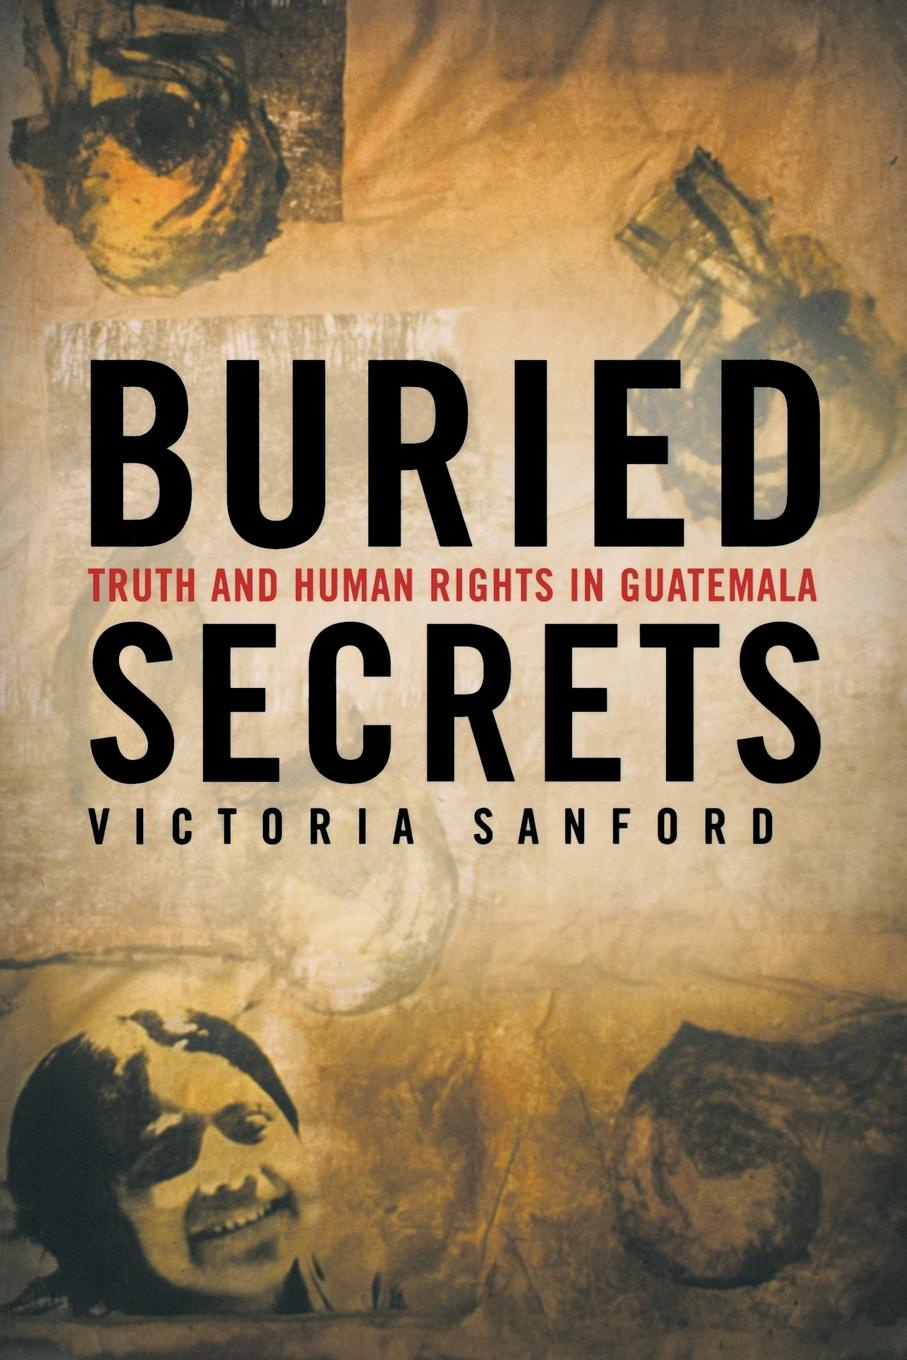 цены Victoria Sanford Buried Secrets. Truth and Human Rights in Guatemala